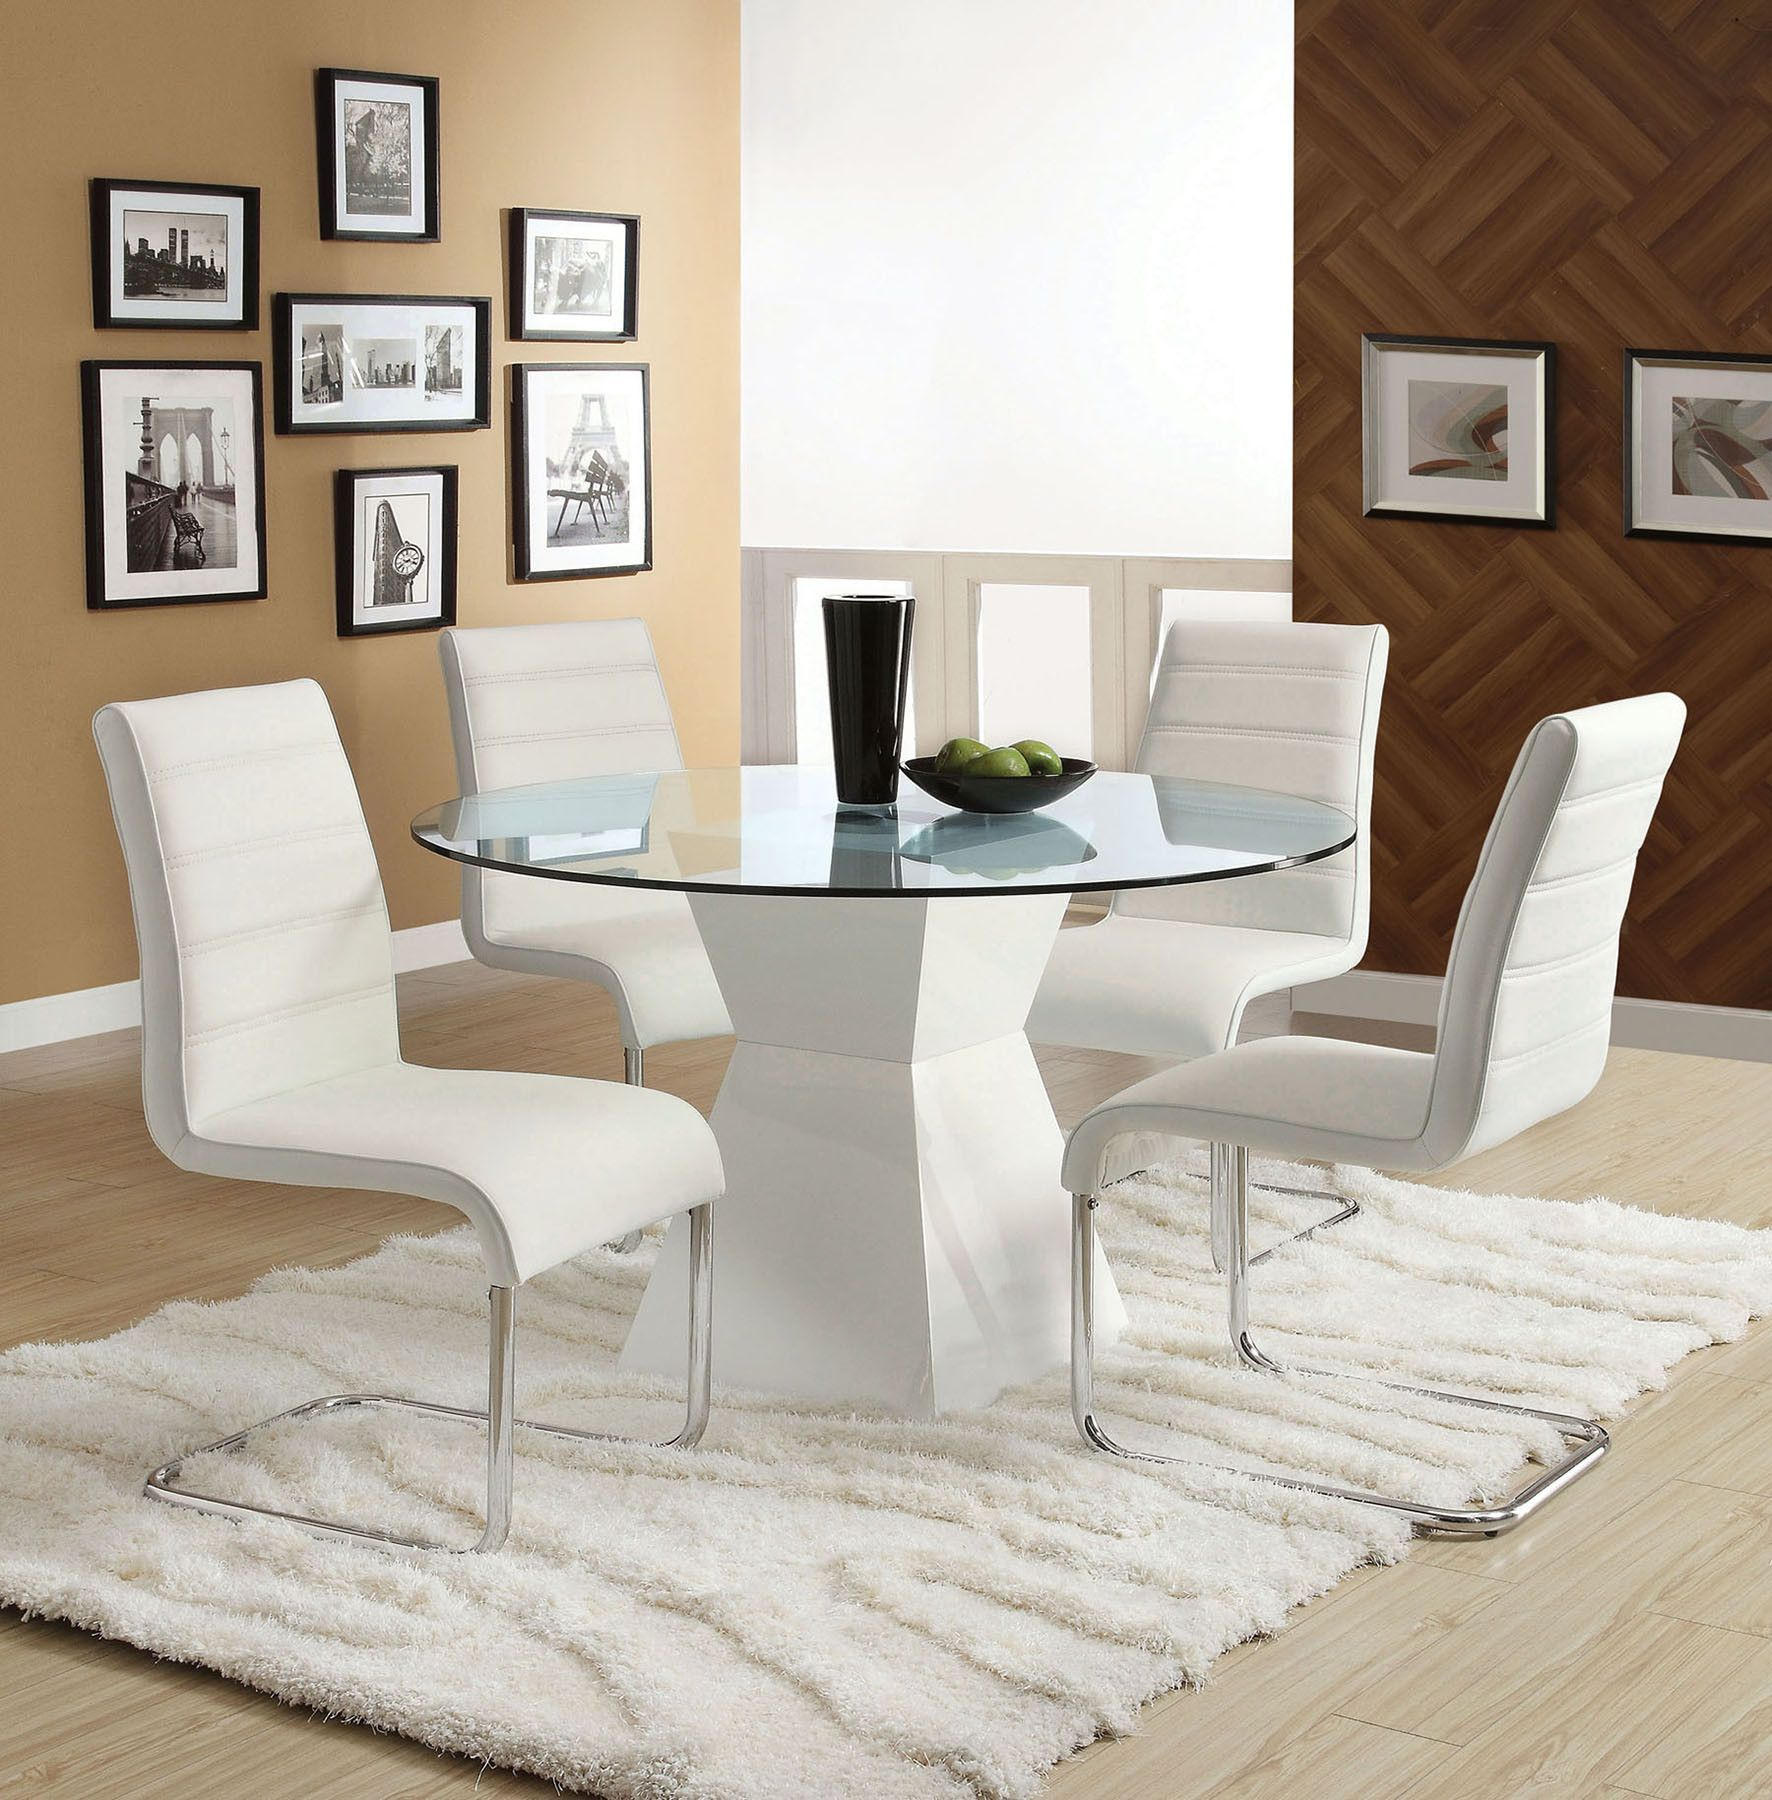 Cm8371t Mauna White Glass Round Dining Table 4 Chairs Glass Top Dining Table Glass Round Dining Table Round Dining Table Sets